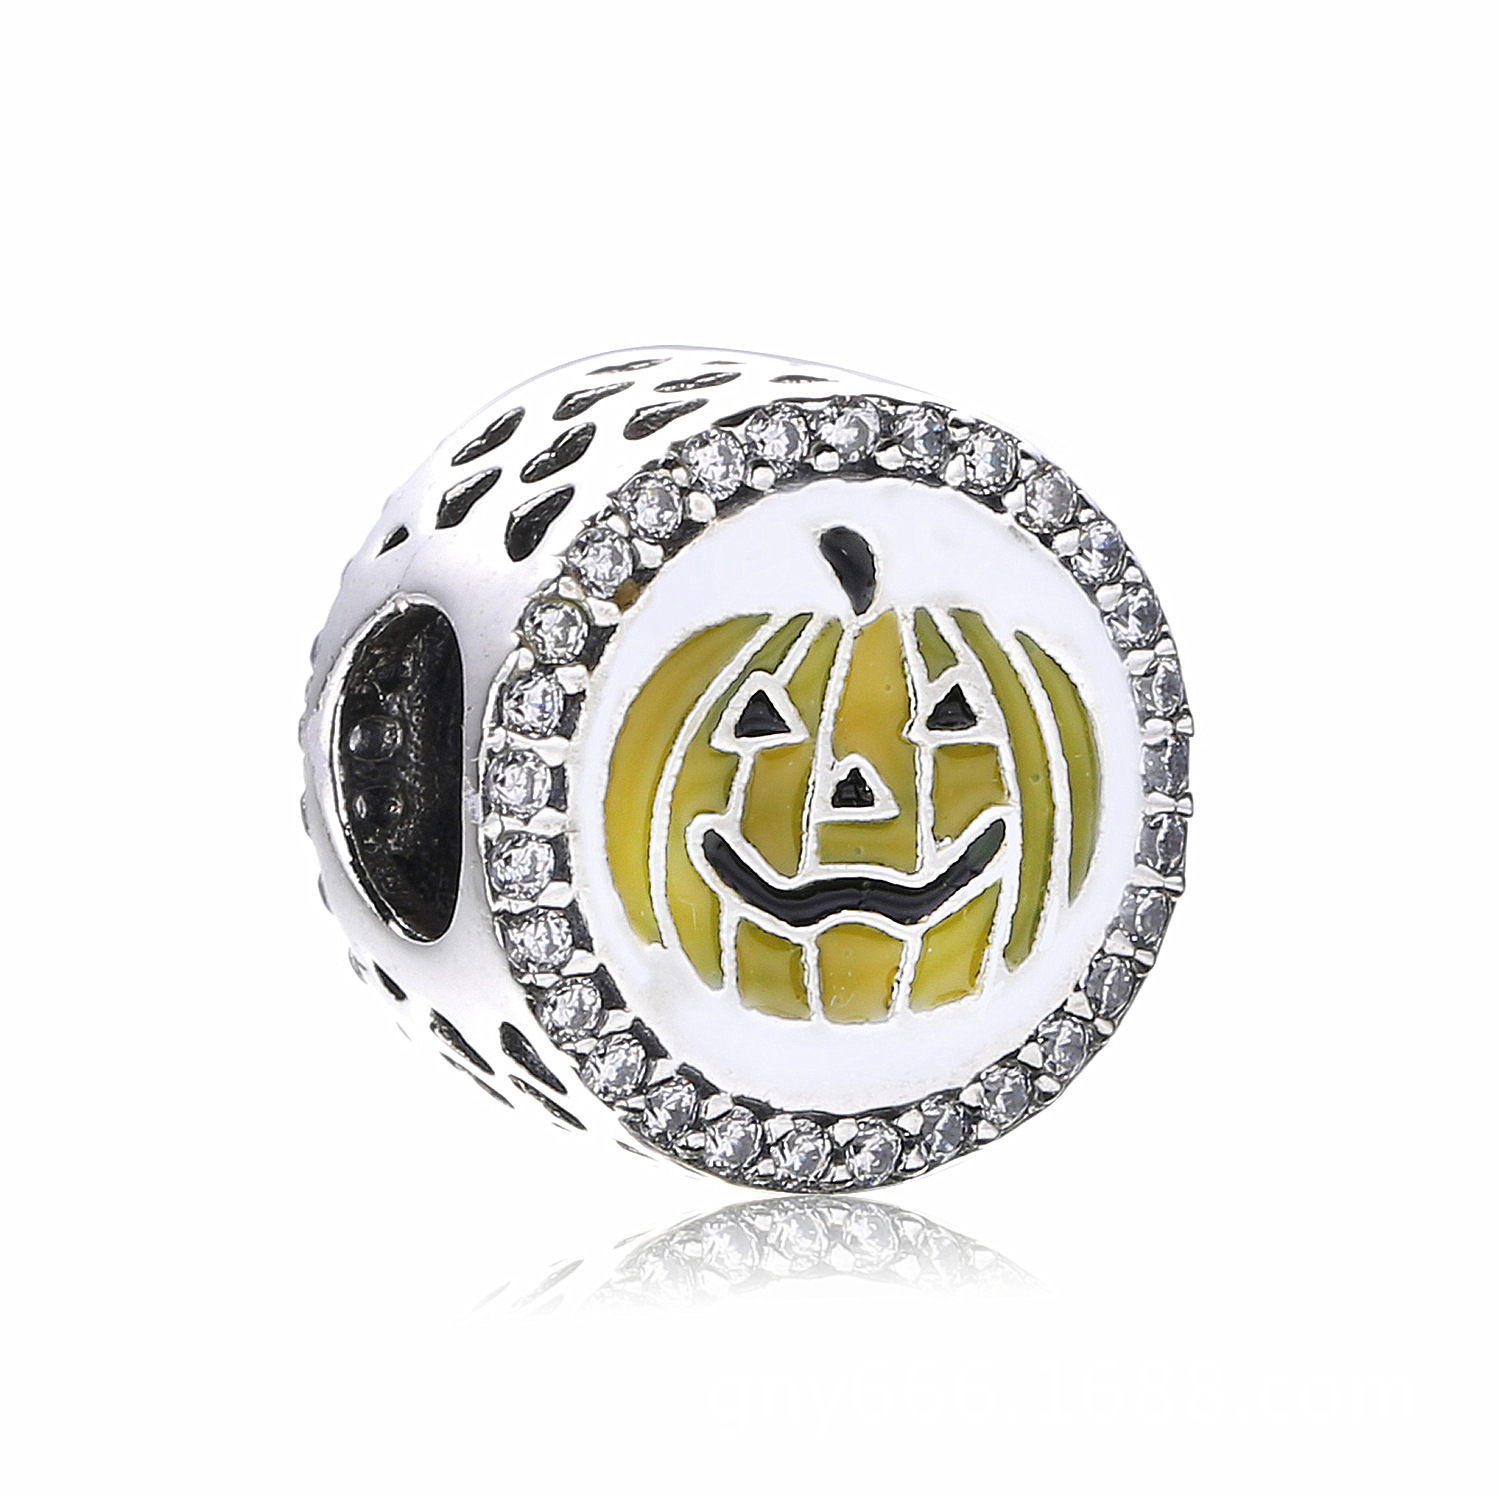 Genuine 925 Sterling Silver Pumpkin Charms Beads With Cz And Enamel Fits Original Pandora Charm Bracelet Diy Jewelry Making